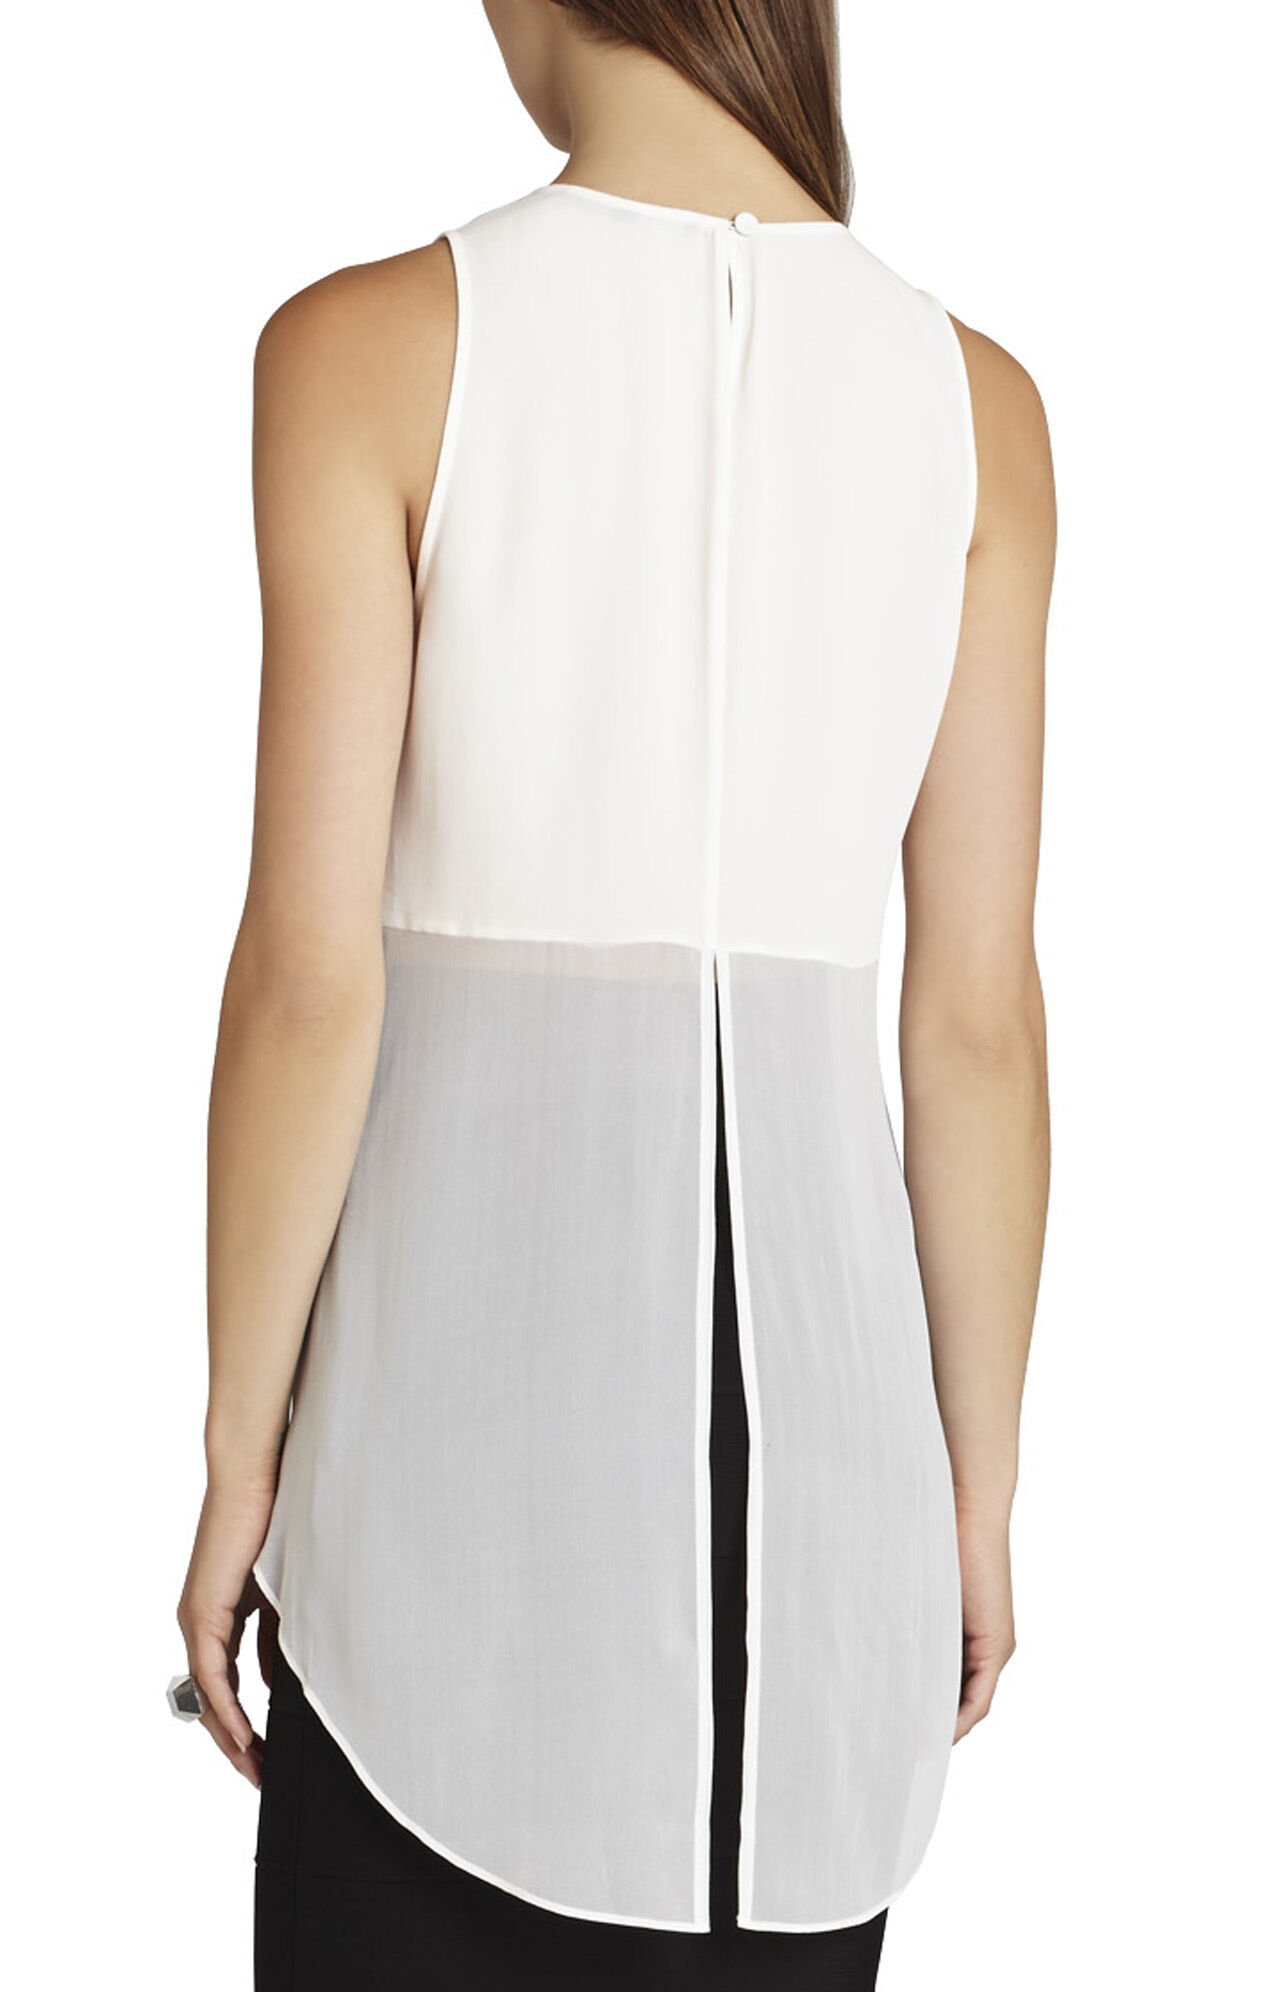 Danna Sleeveless Embellished Top